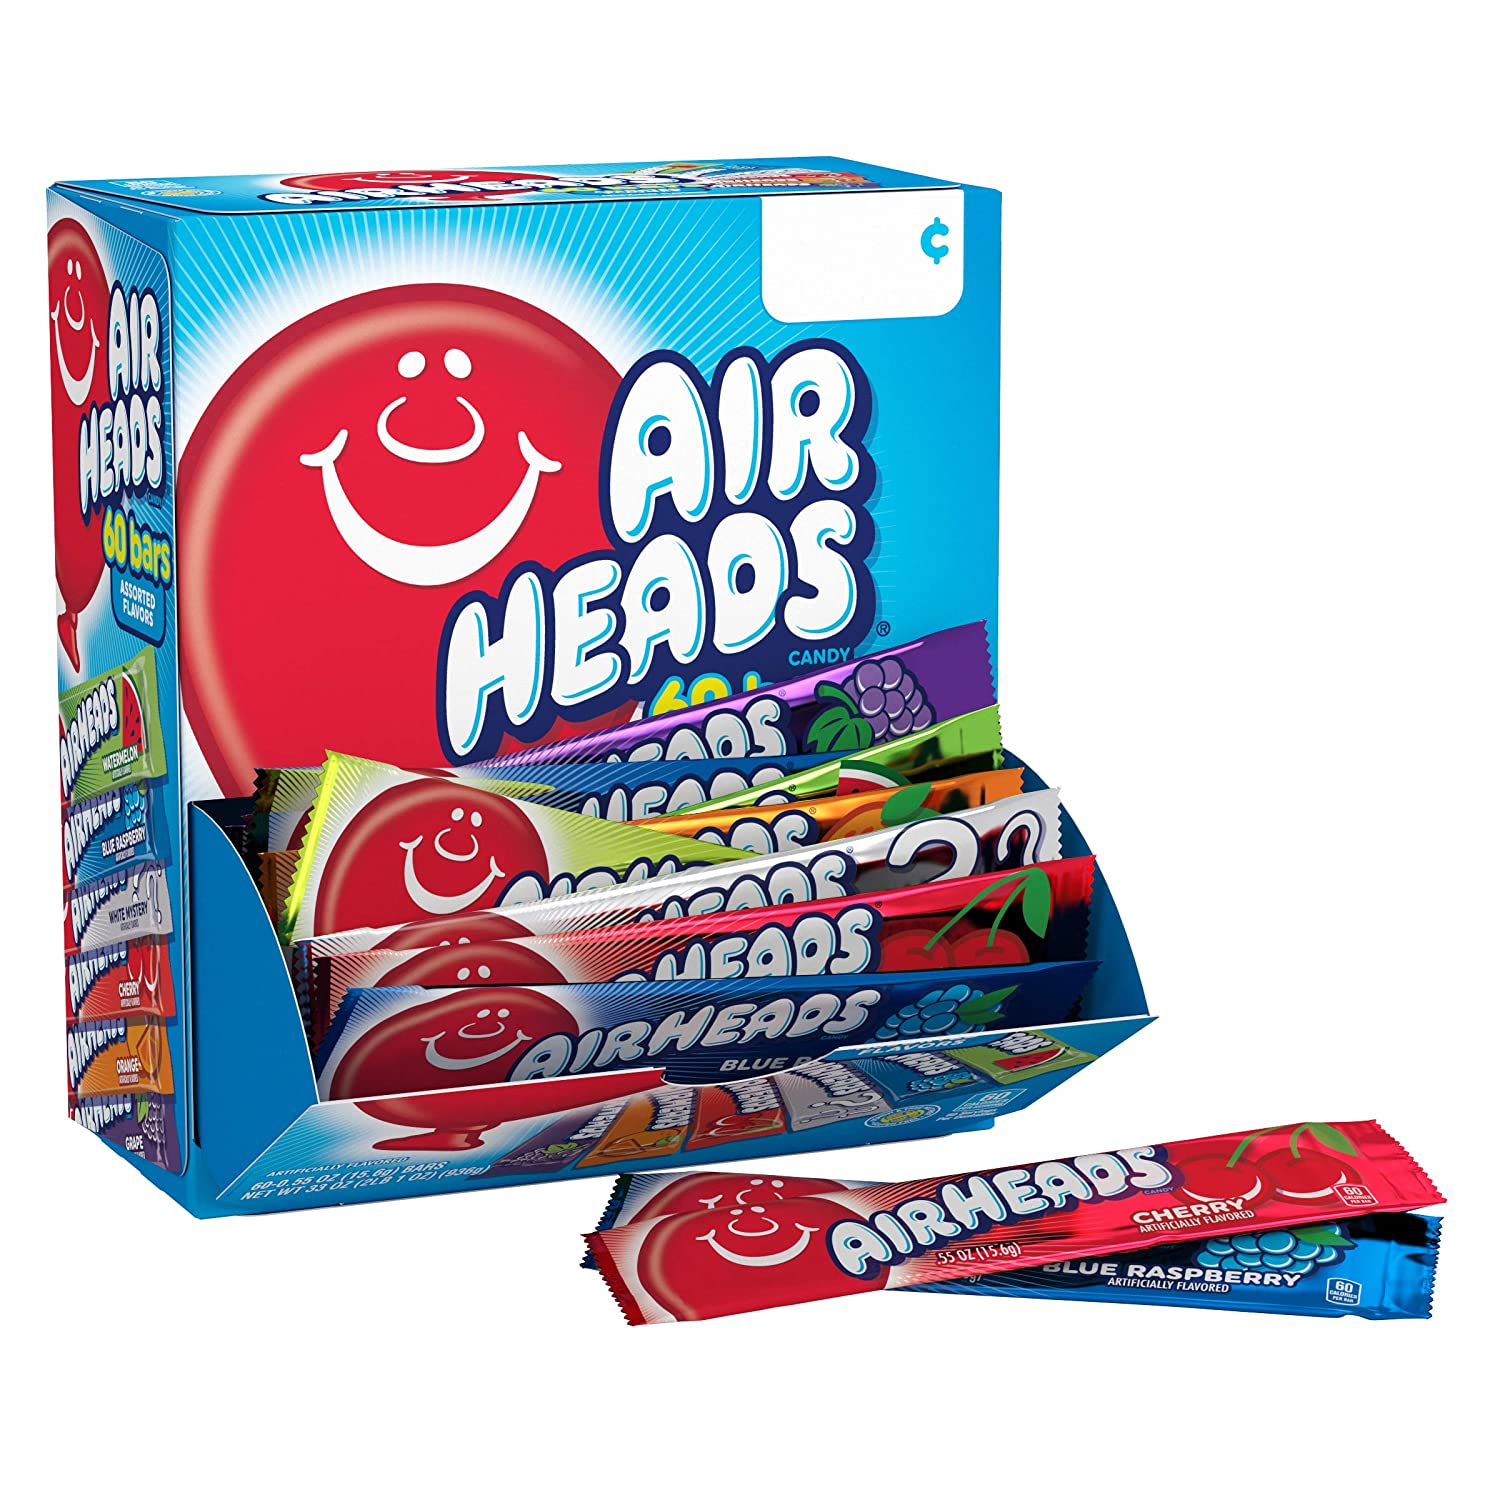 Airheads Candy Bars: 60 Count! As low as .78 at Amazon!